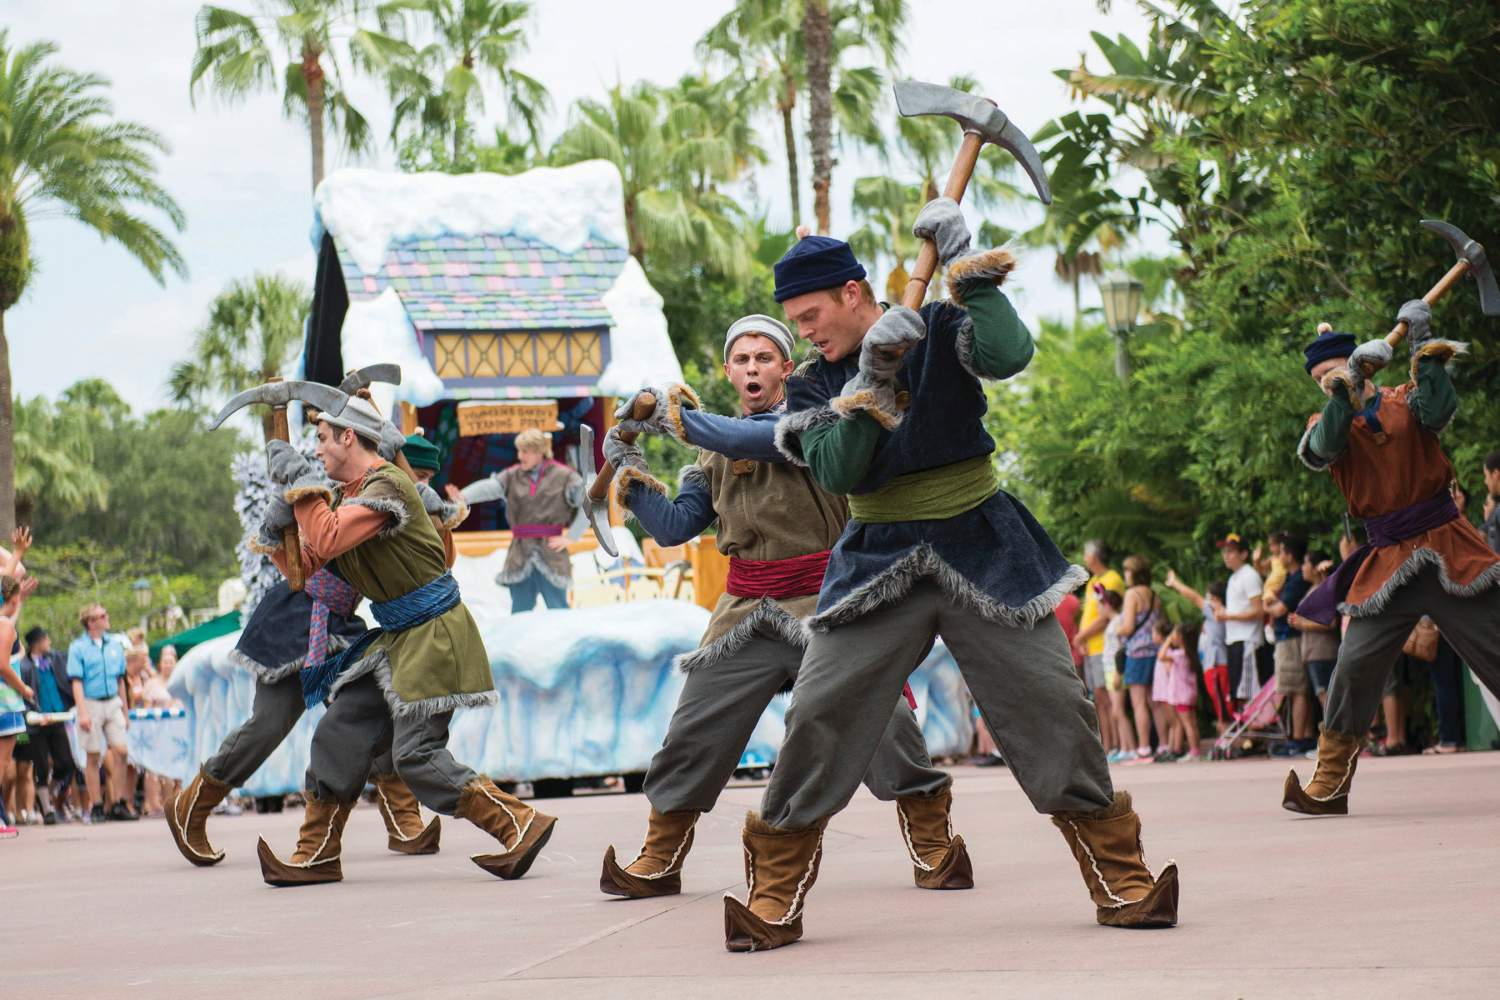 A show in every corner of Disney land